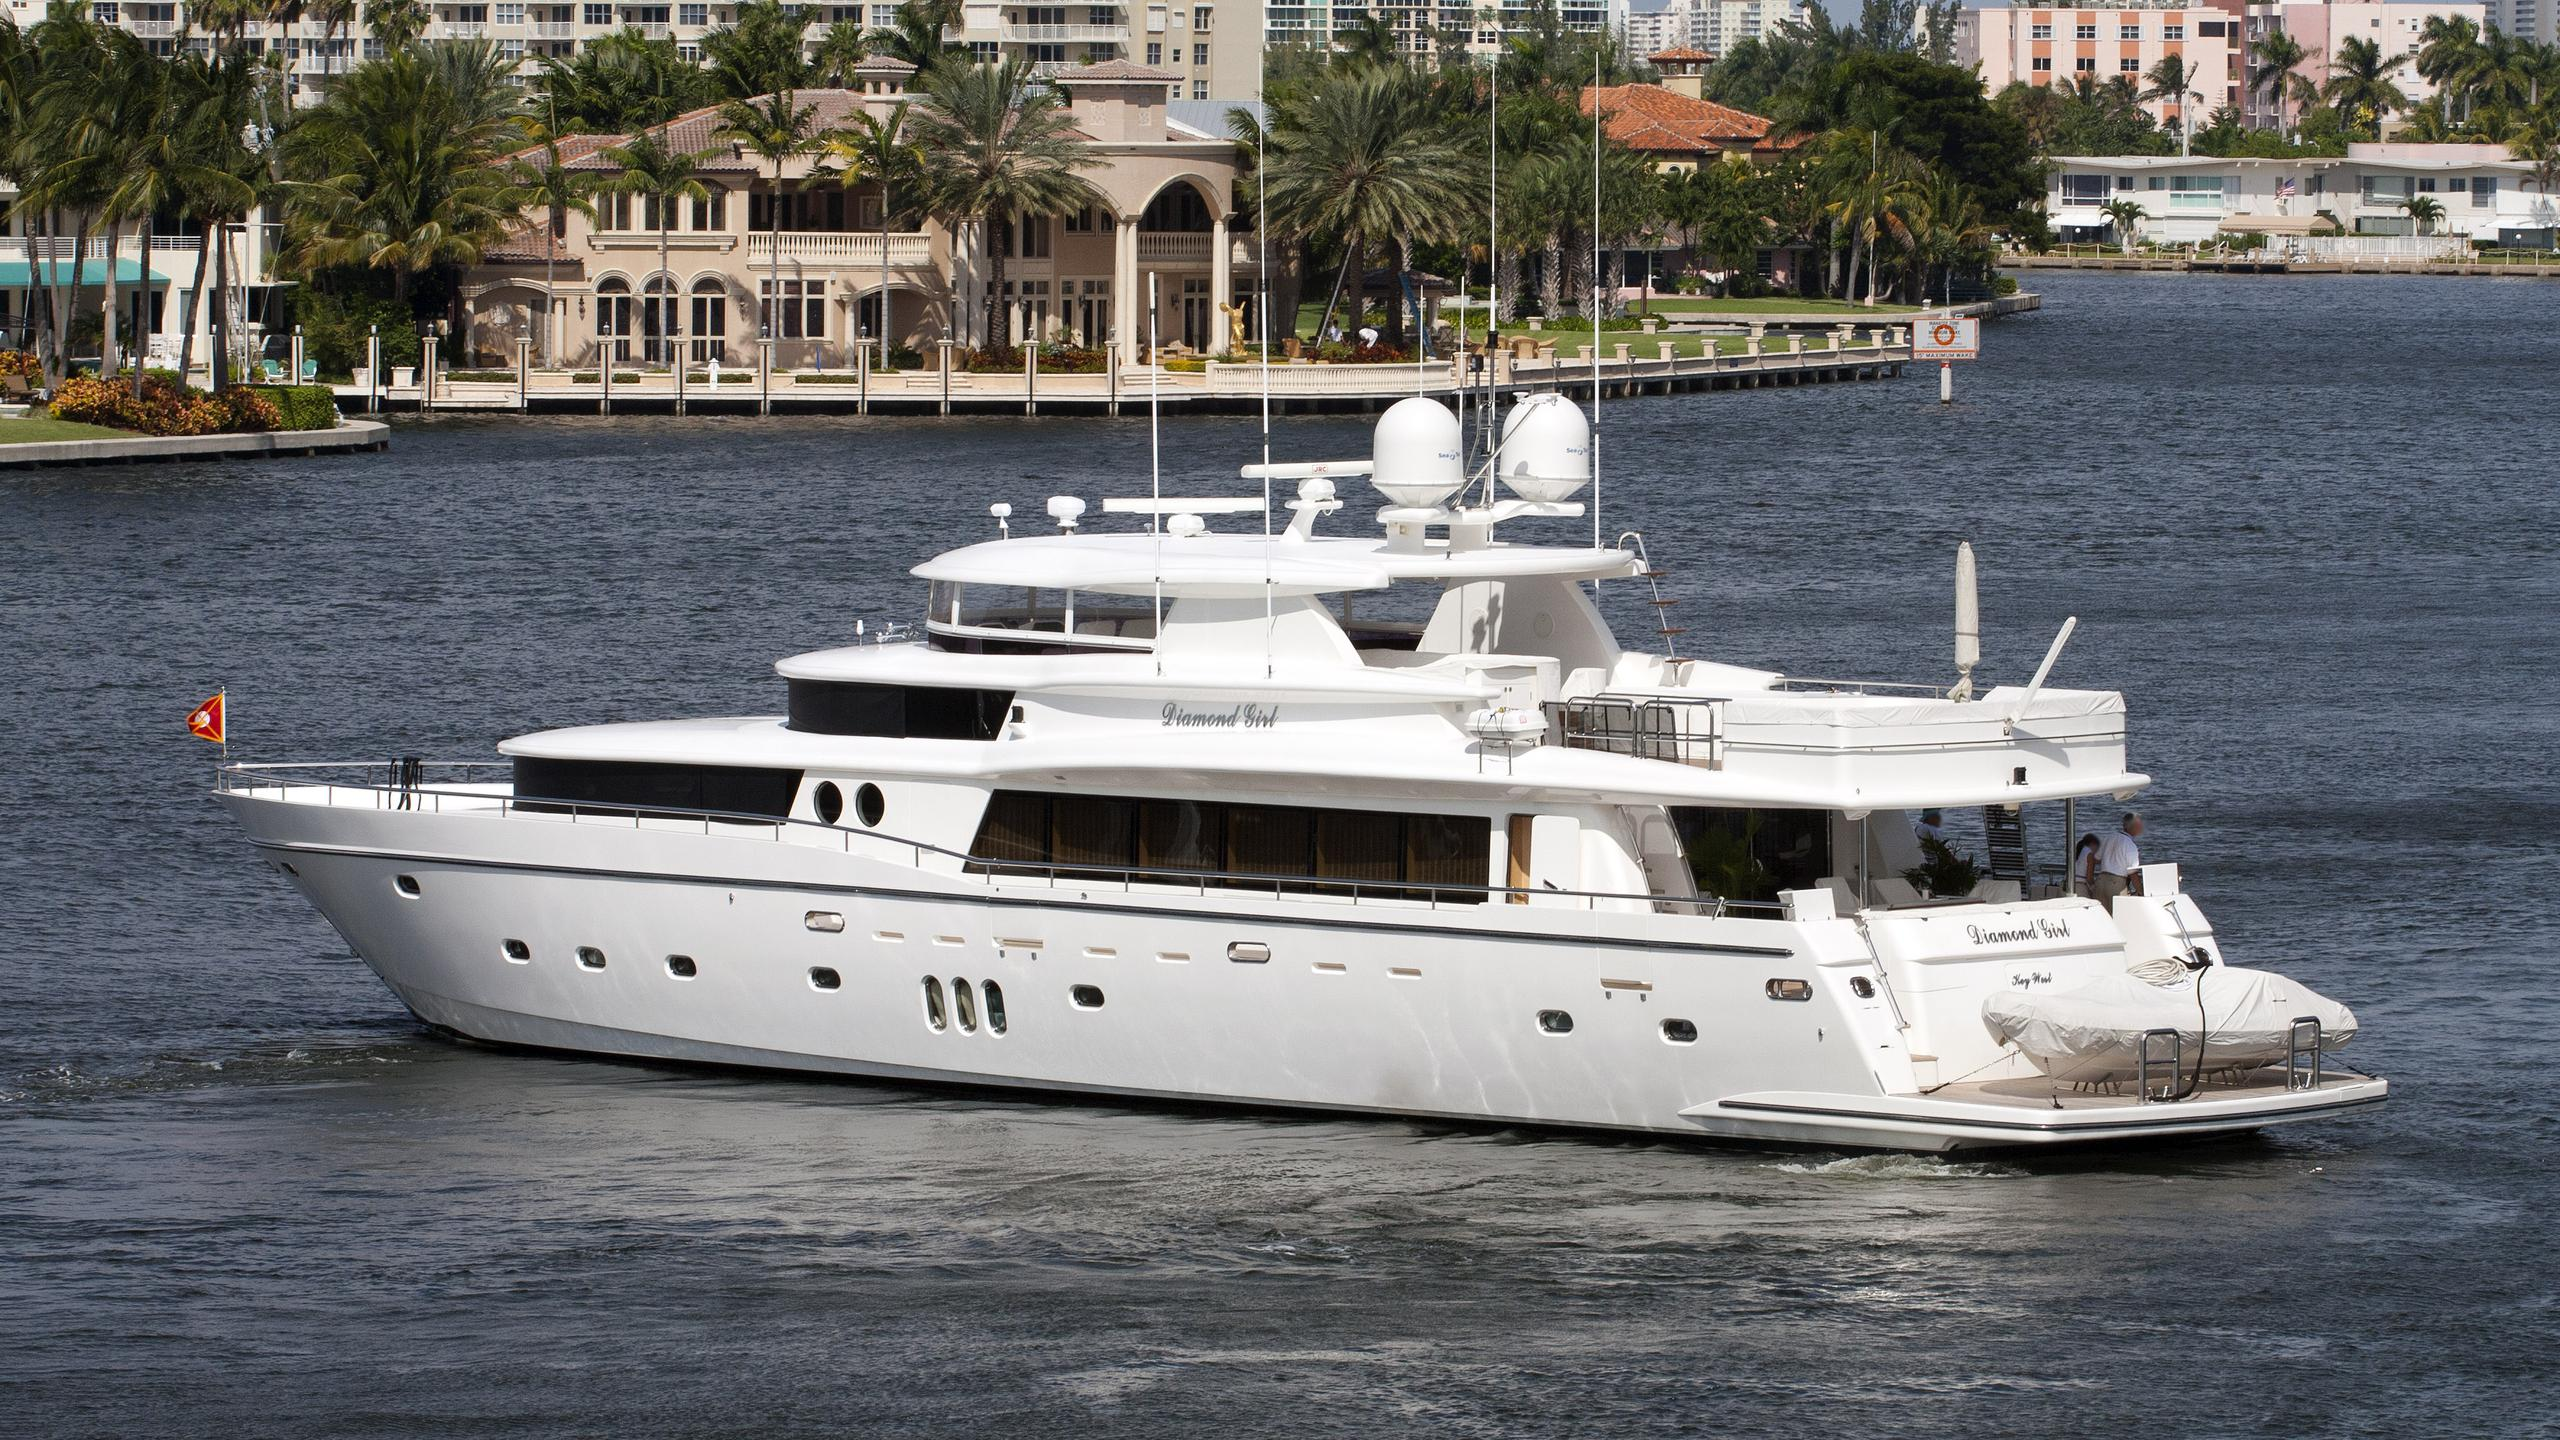 diamond-girl-motor-yacht-johnson-103-2007-31m-profile